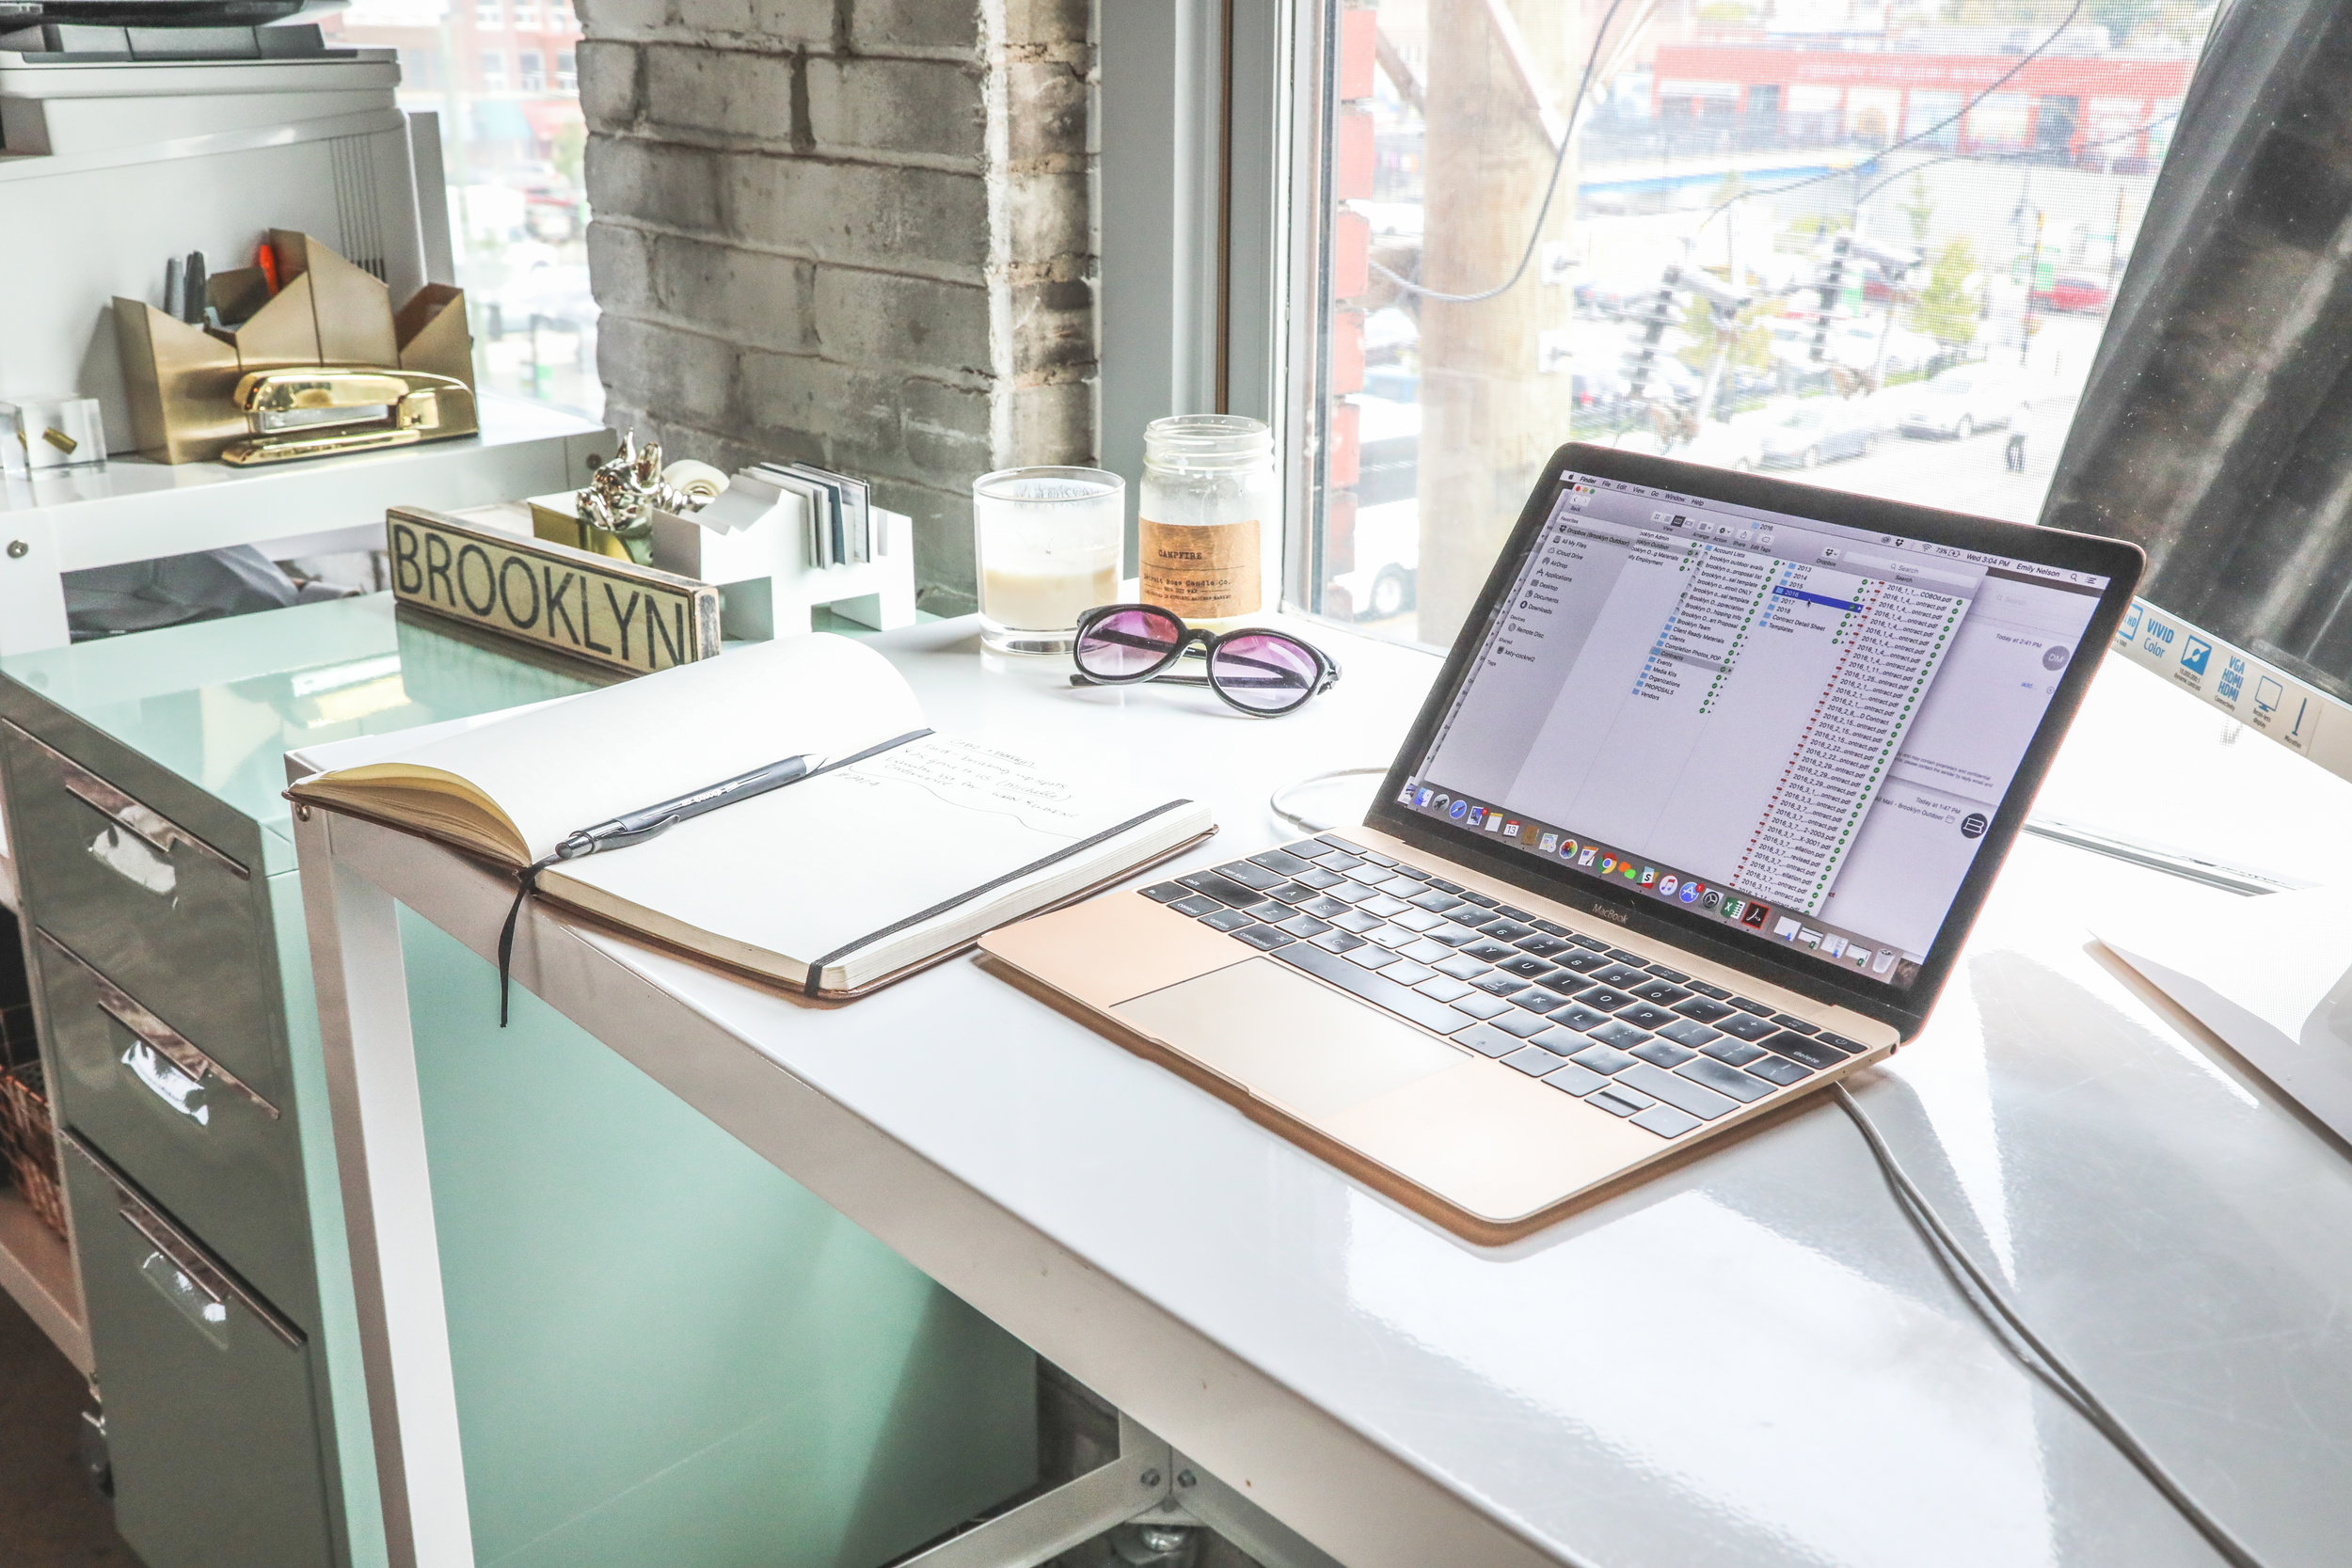 Designing Your Home Office While Ballinu0027 On That Budget By Jaylen Lewis